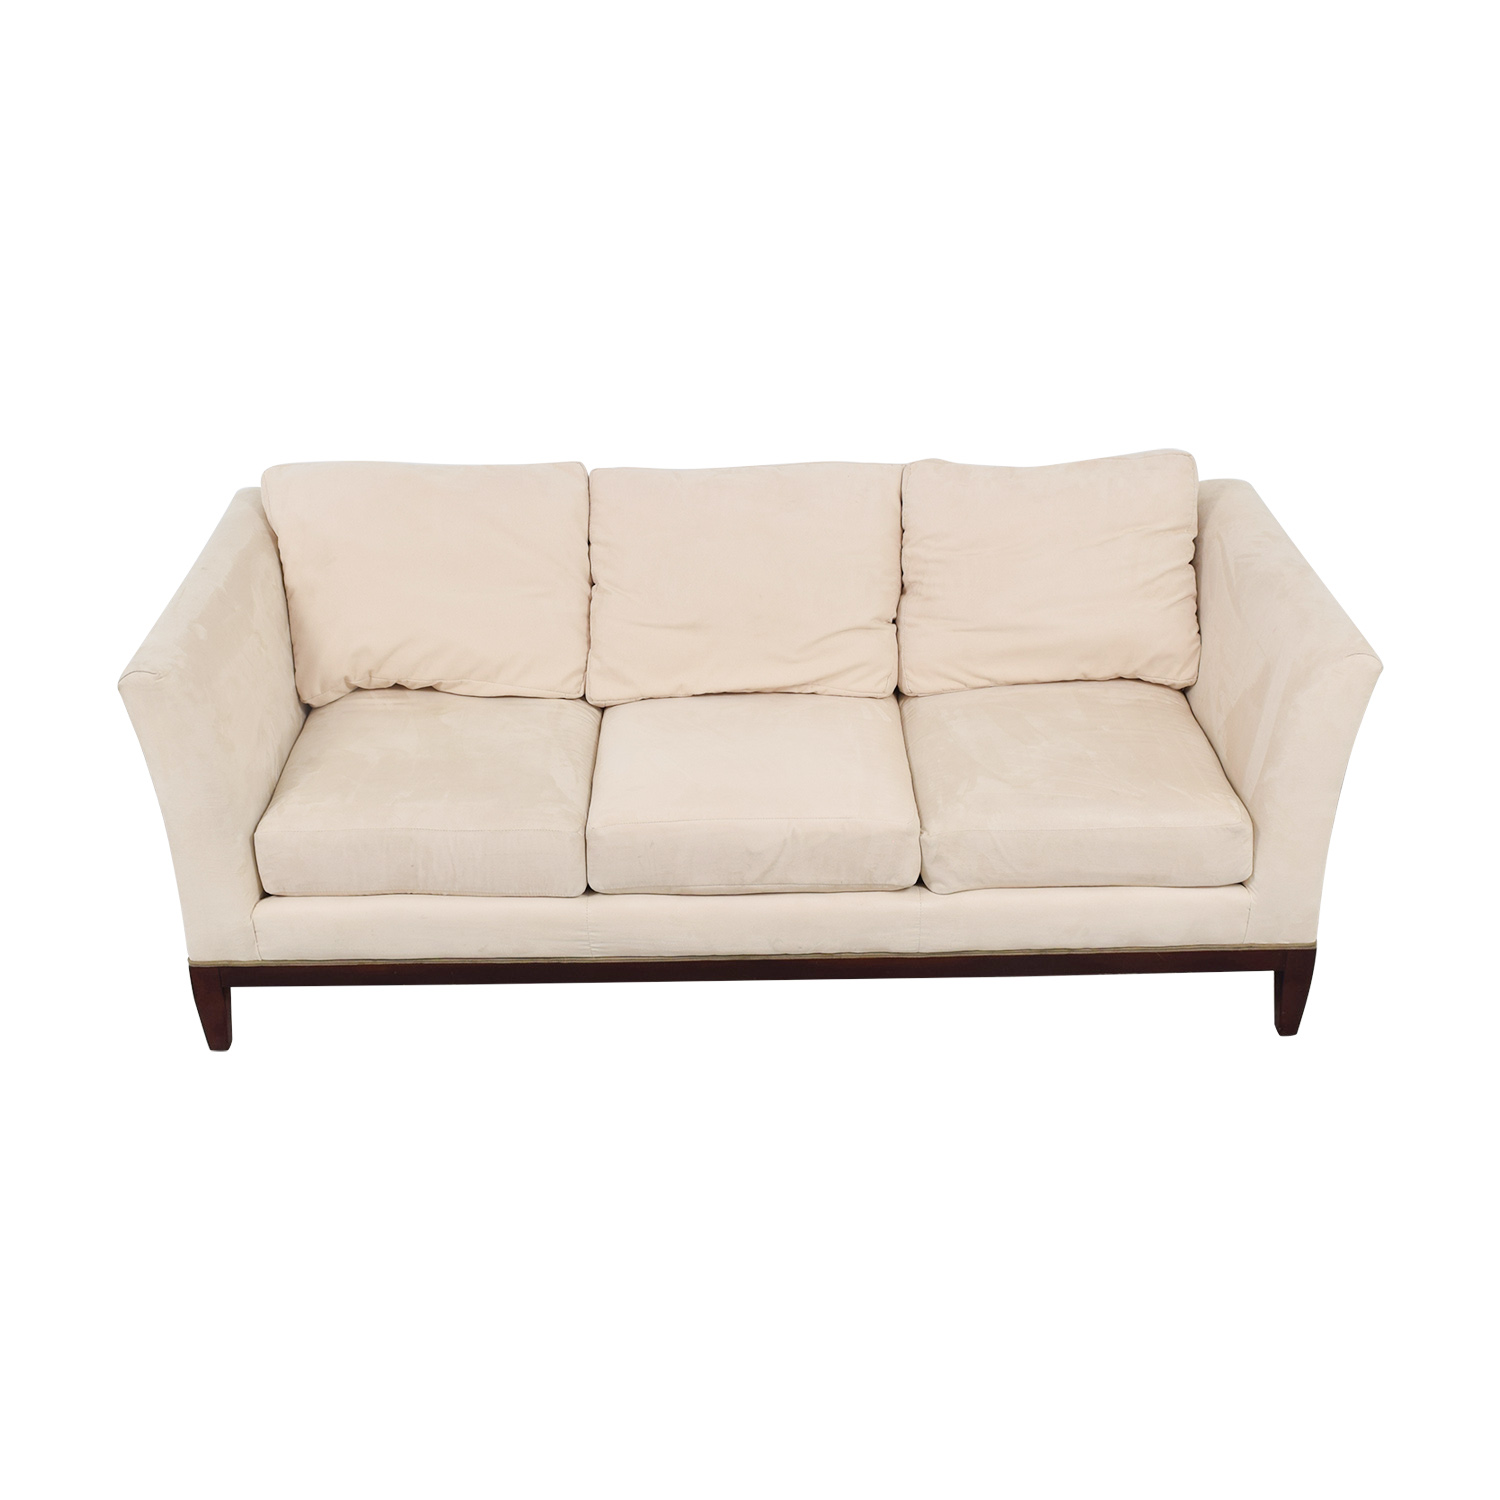 Woodmark Woodmark White Three-Cushion Sofa second hand